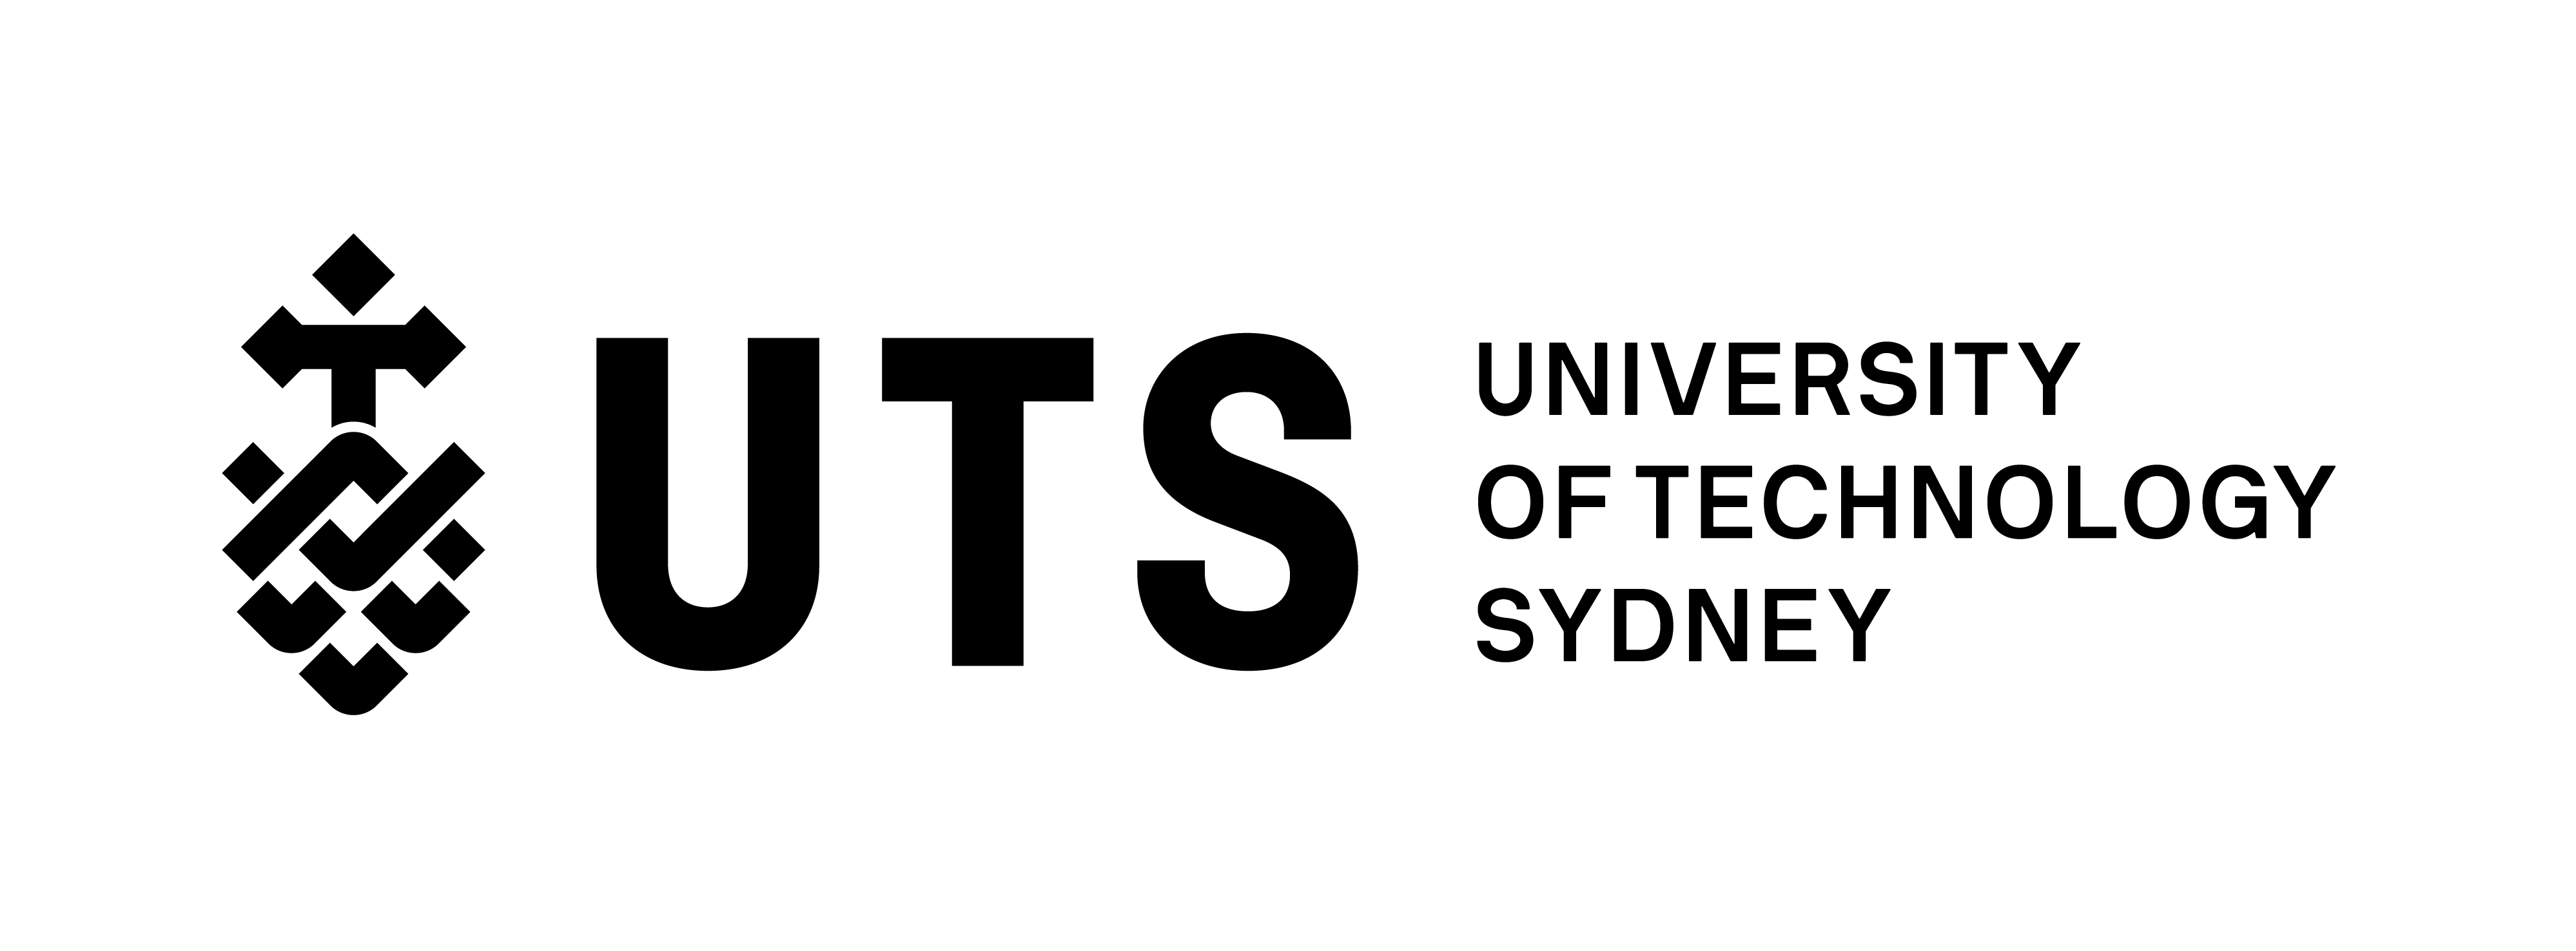 University of Technology Sydney - Graduate Certificate in Internetworking